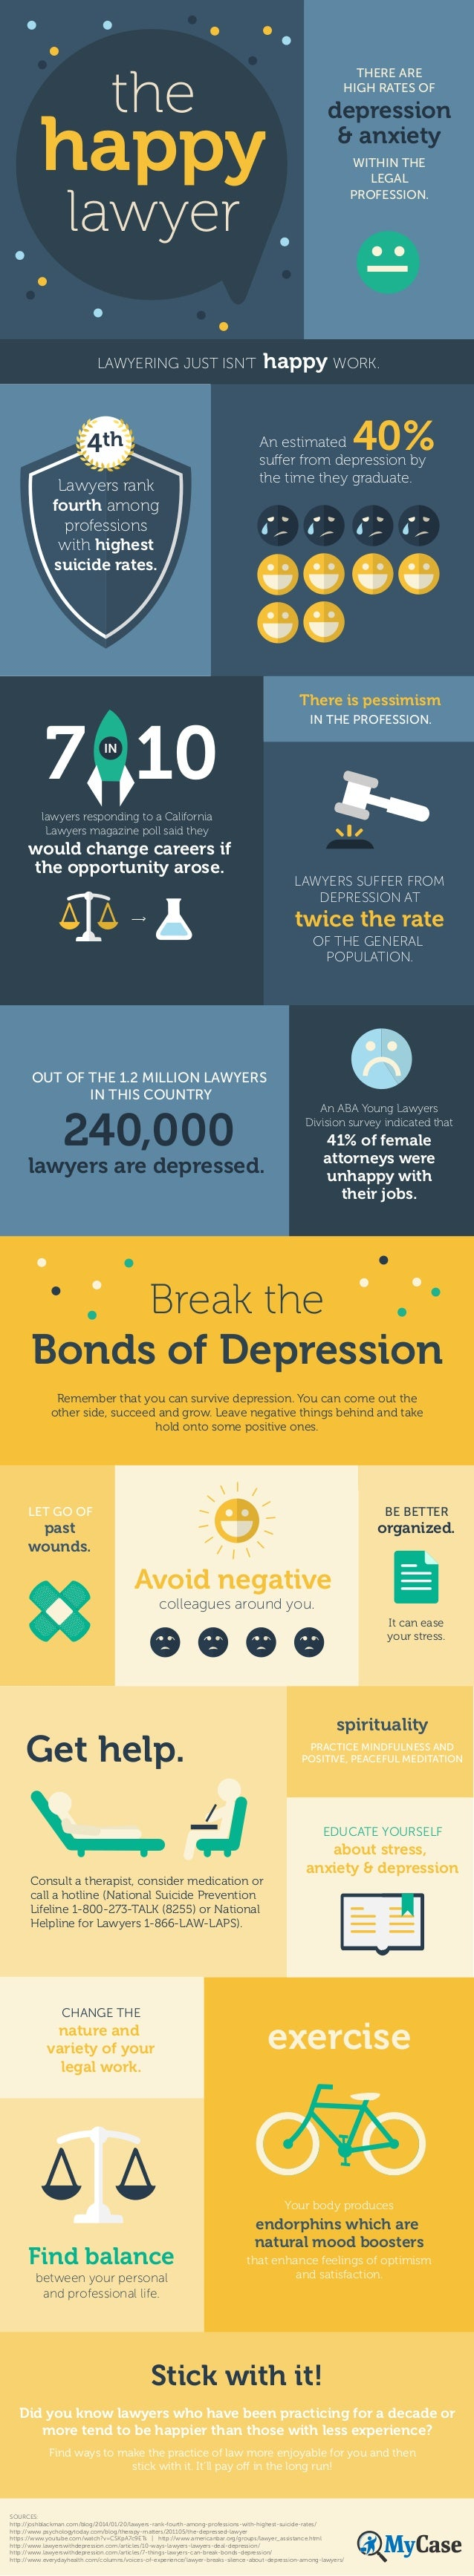 LAWYERS SUFFER FROM DEPRESSION AT OF THE GENERAL POPULATION. twice the rate the lawyer happy An estimated suffer from depr...